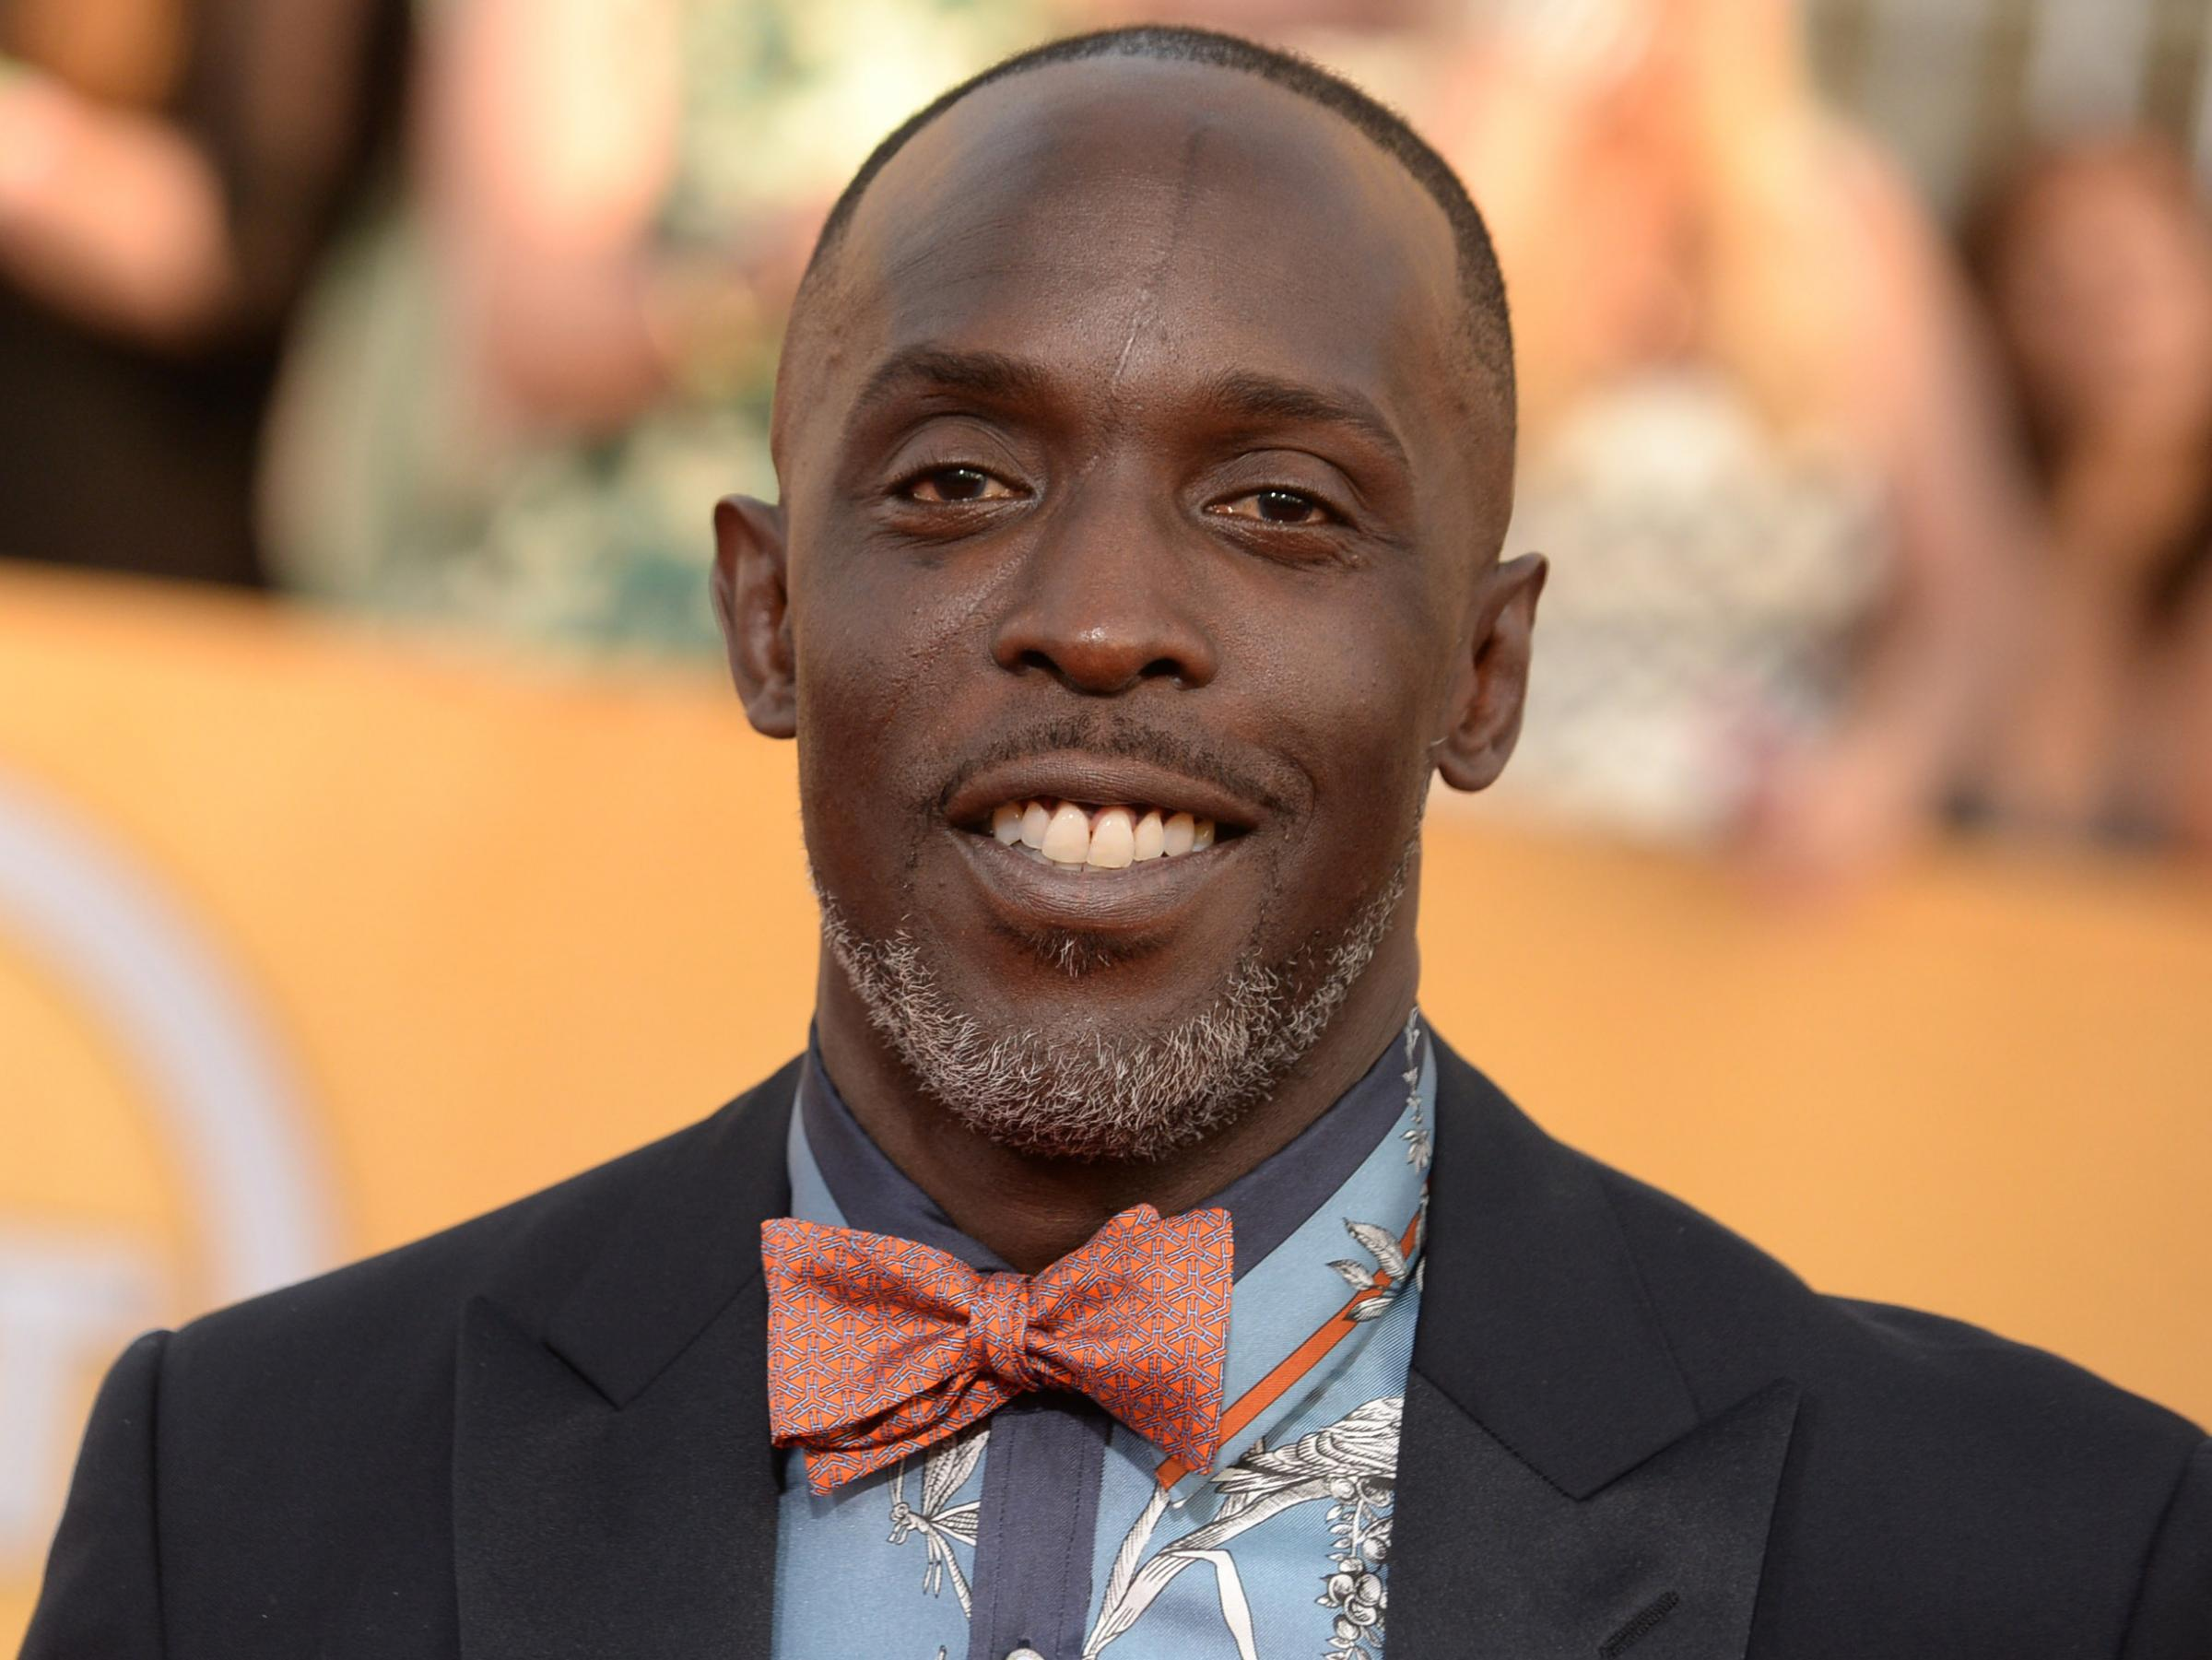 Michael Kenneth Williams earned a  million dollar salary - leaving the net worth at 1.5 million in 2018